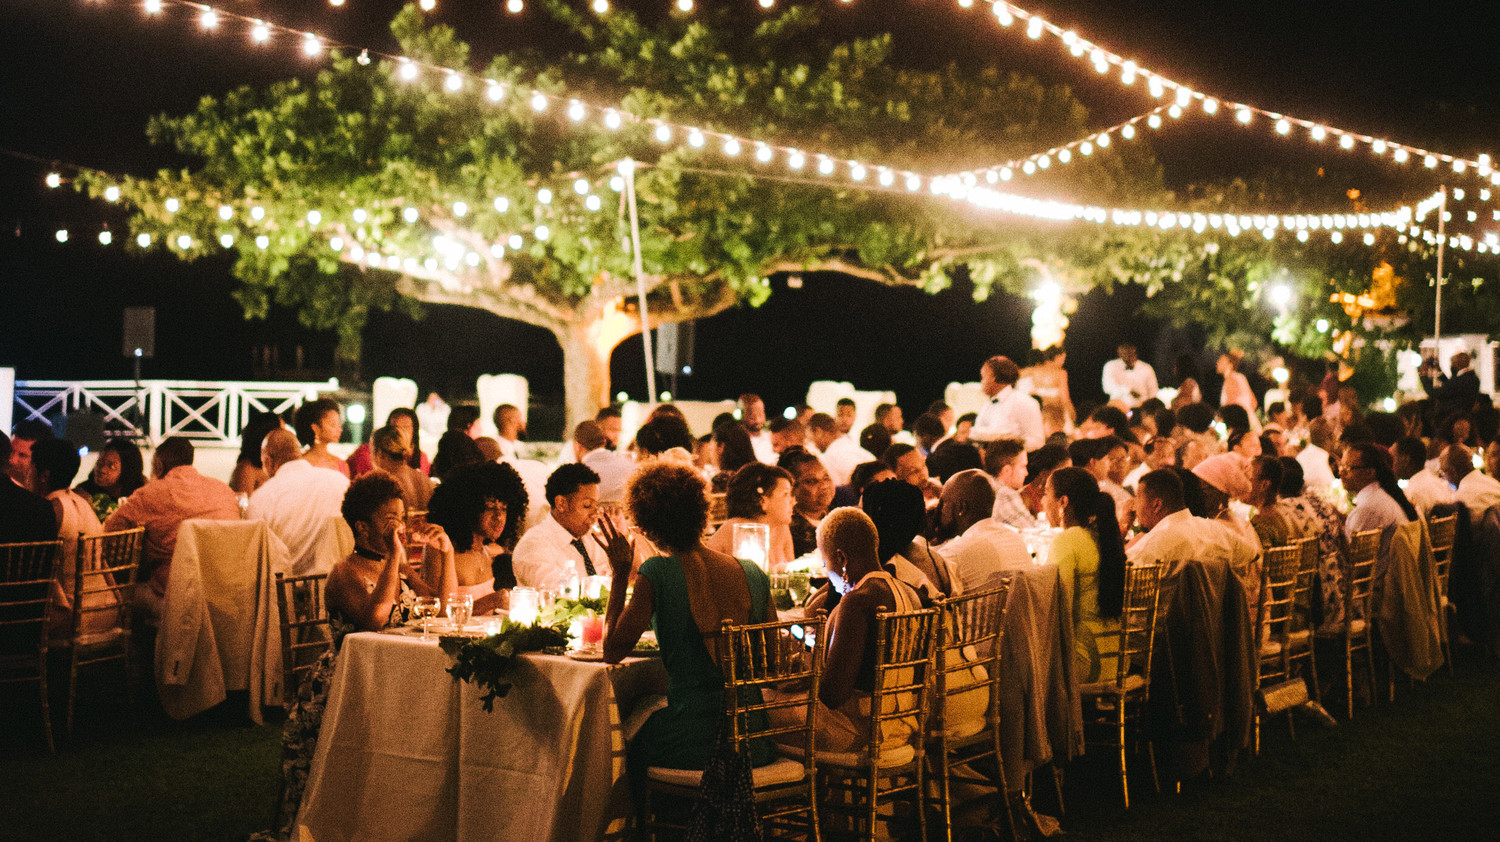 How to Illuminate Your Outdoor Wedding | Martha Stewart Weddings